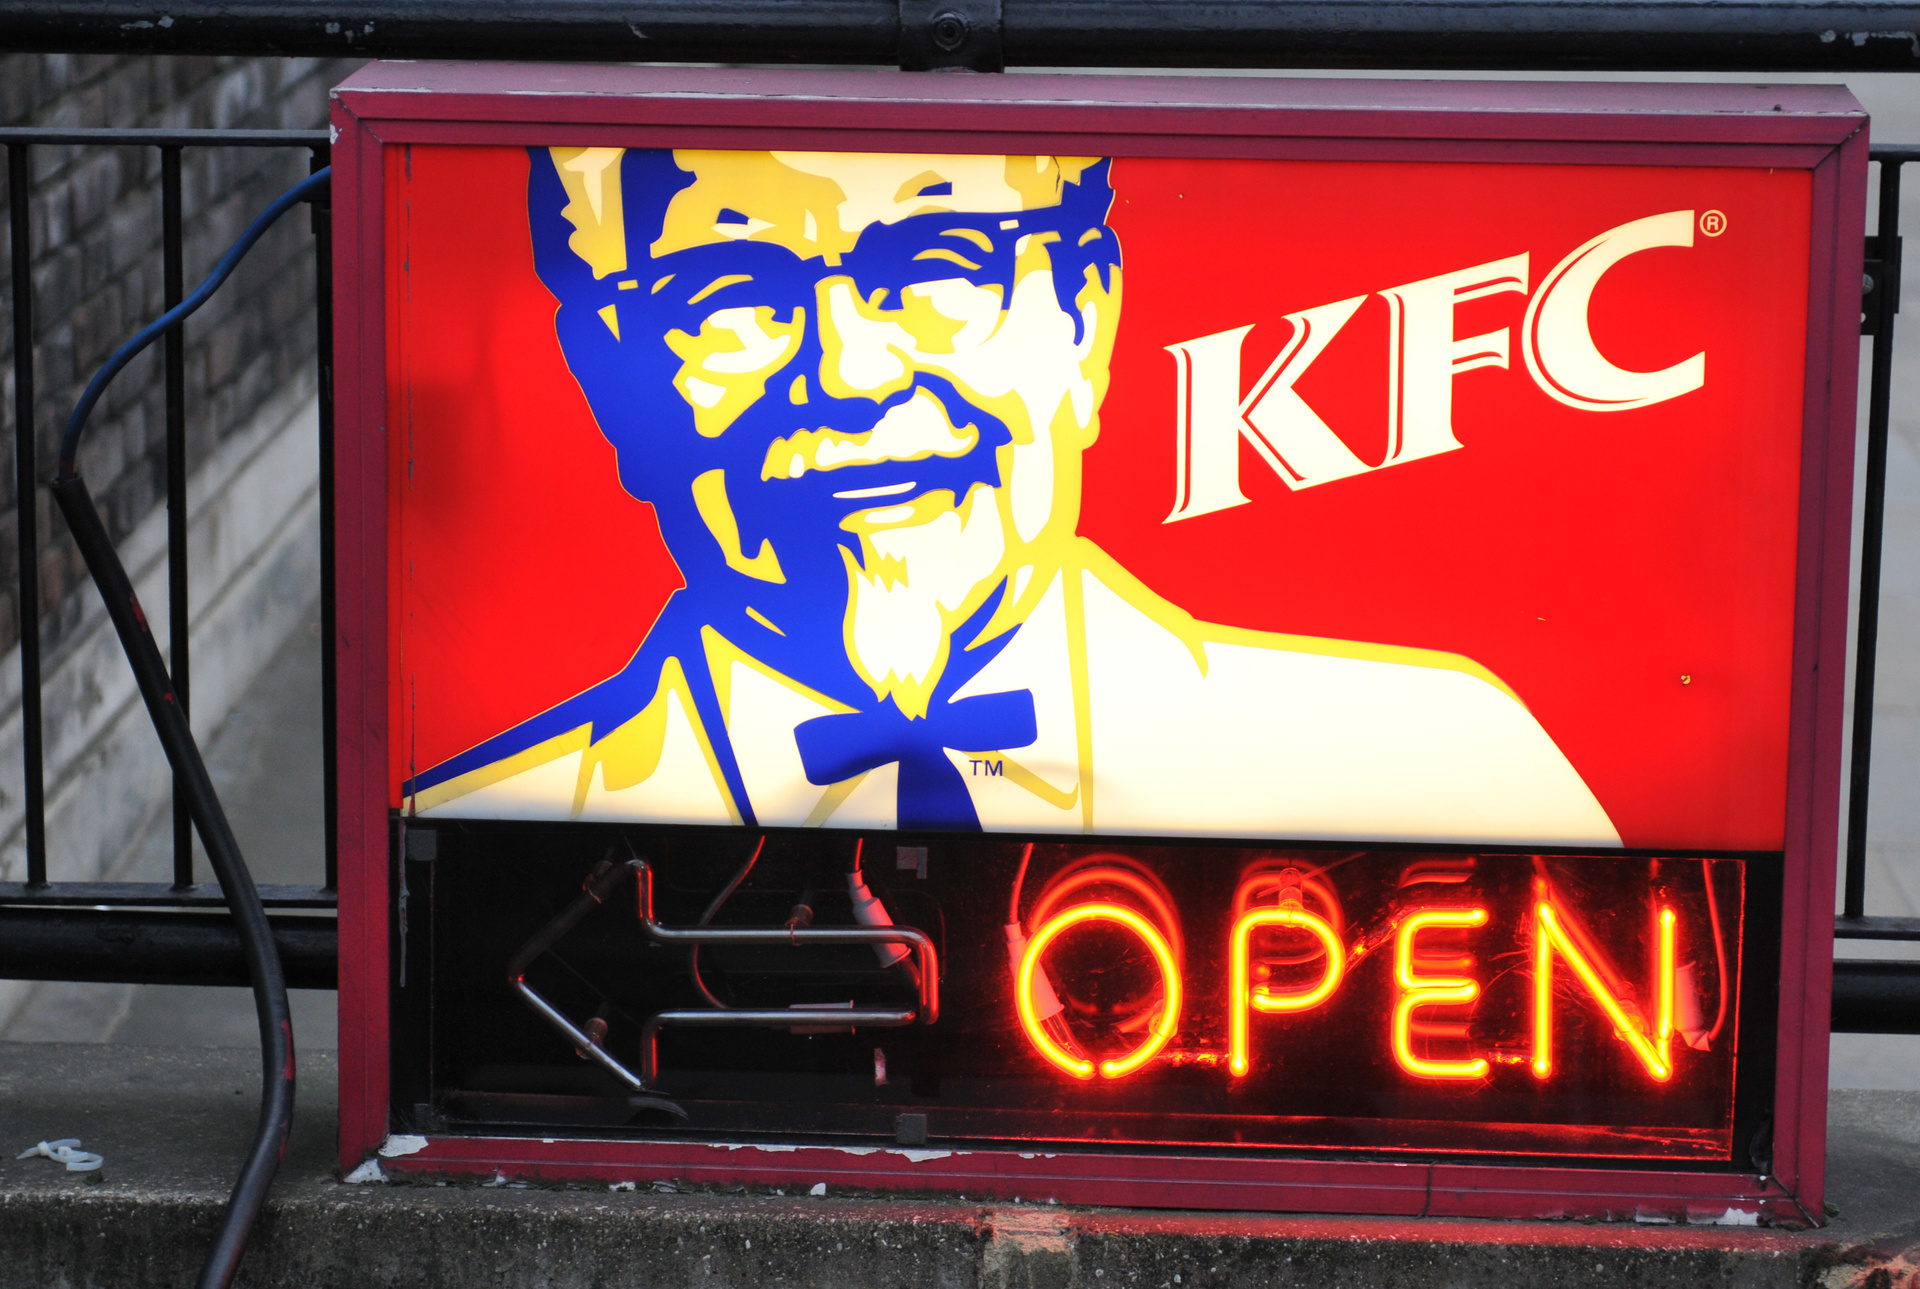 KFC boss in the UK says healthy fast food does not work